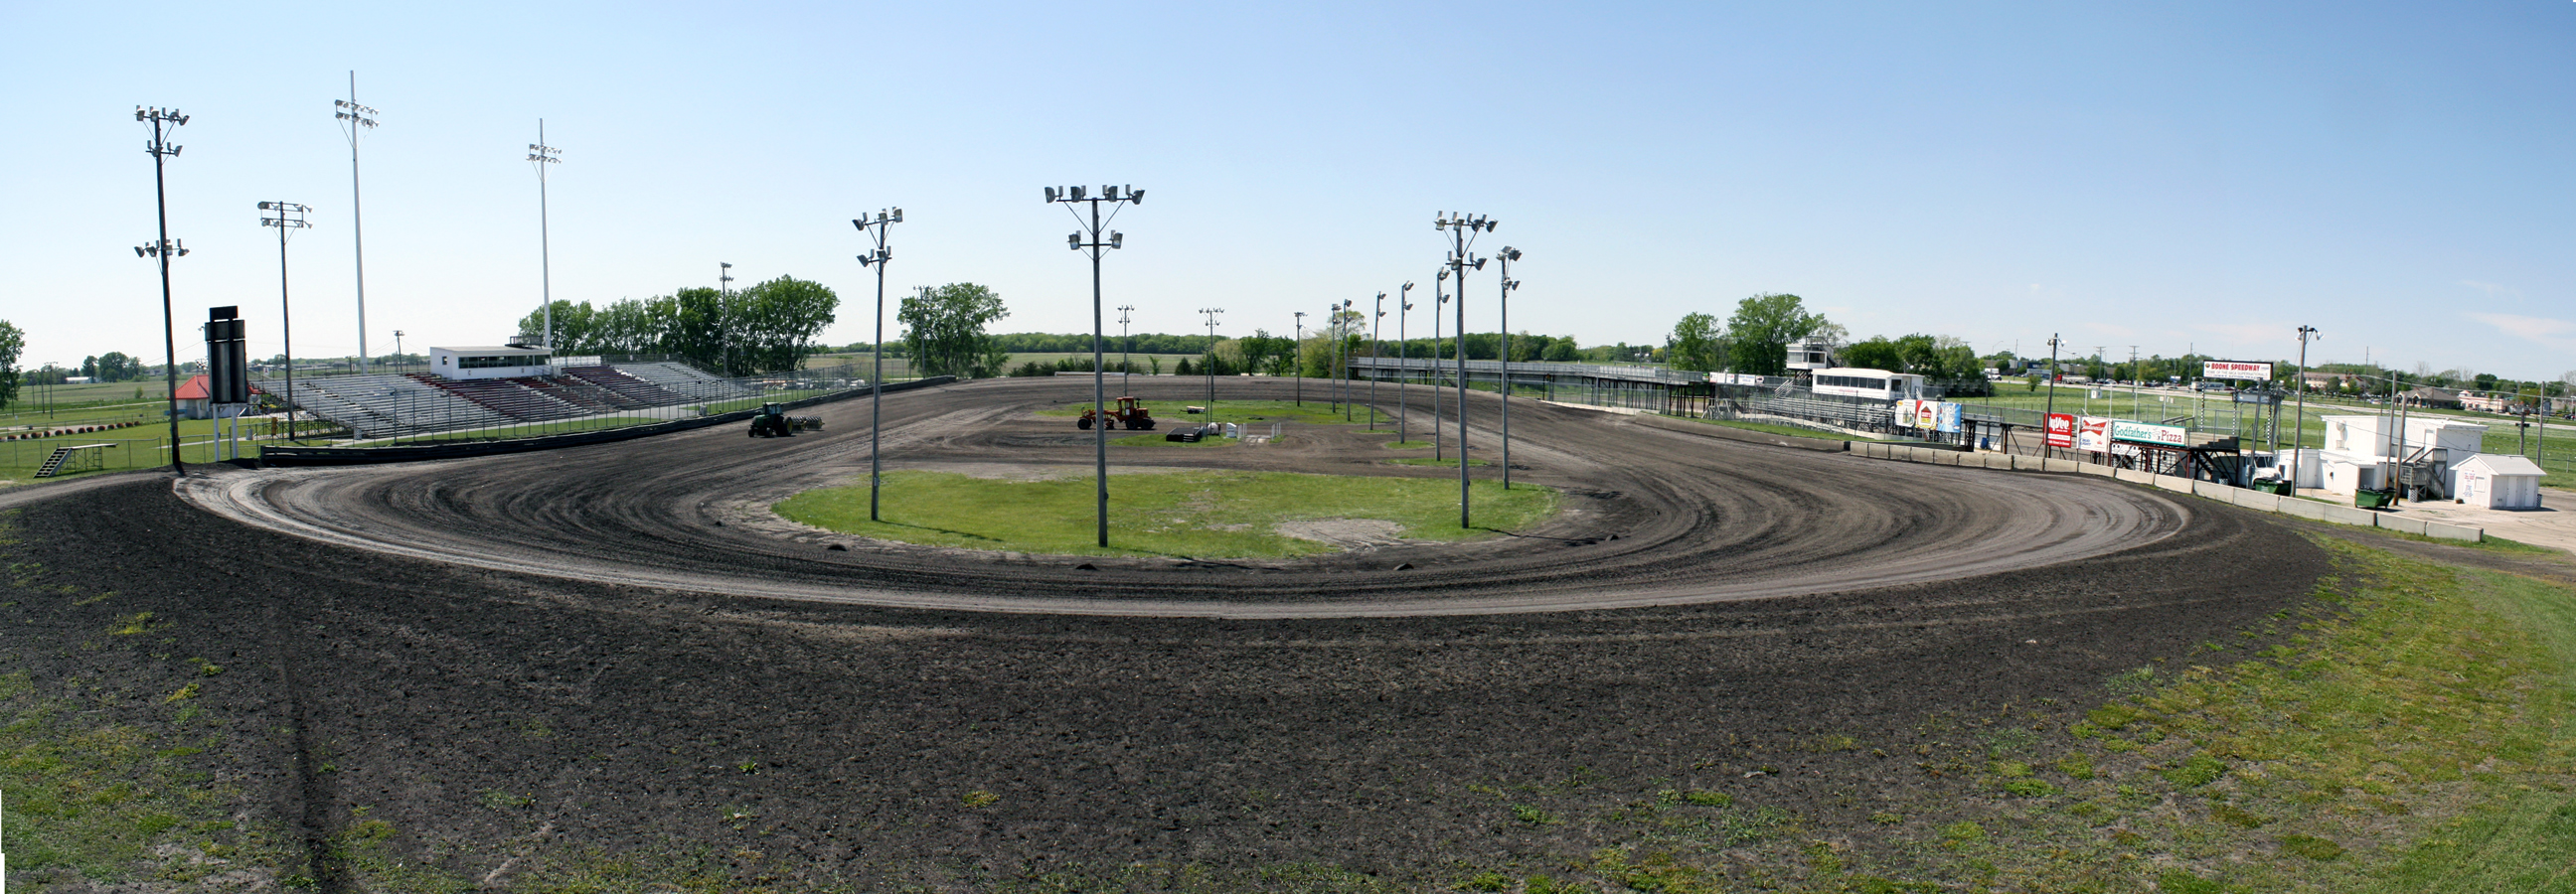 track–the Boone Speedway,